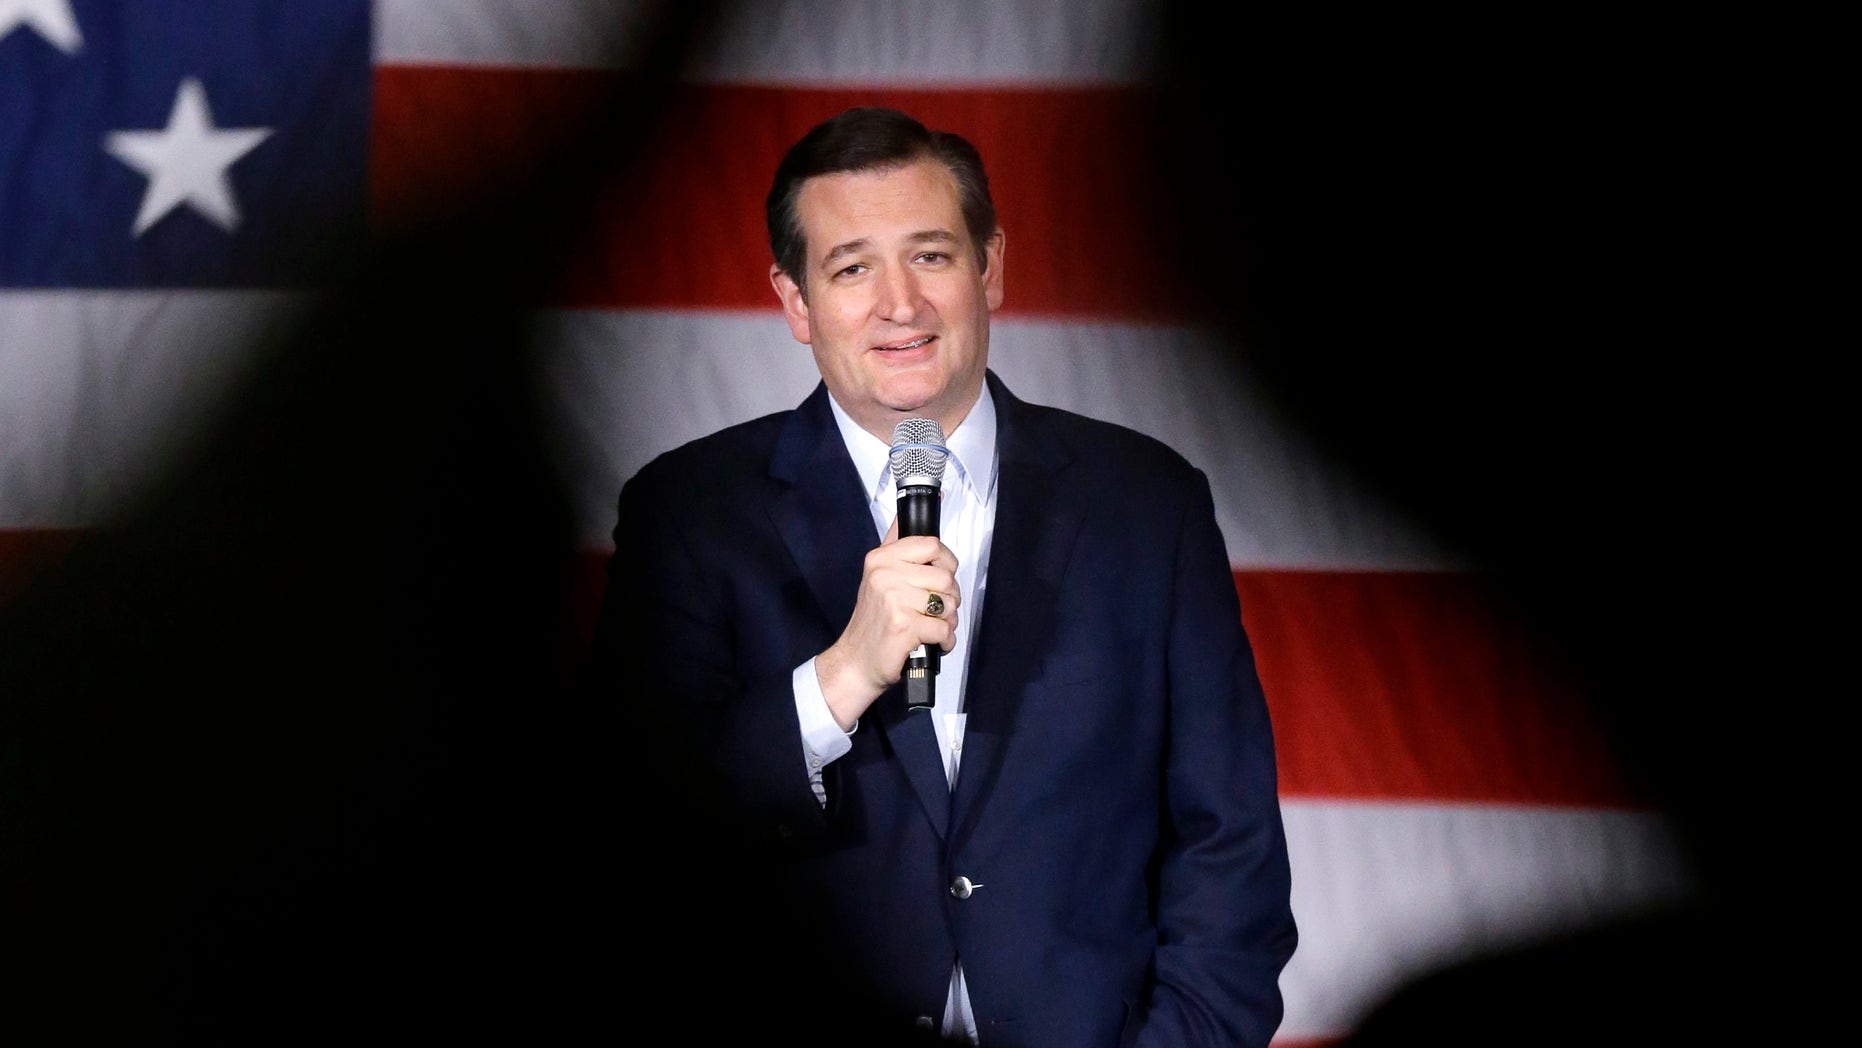 In this April 4, 2016, photo, Republican presidential candidate, Sen. Ted Cruz, R-Texas, speaks at a campaign stop at Waukesha County Exposition Center in Waukesha, Wis. Cruz is increasingly winning over voters to his presidential bid. Heâs still not winning over fellow Republican senators. The Texas Republican is notorious for alienating his colleagues with tactics including pushing a fruitless government shutdown in 2013 and accusing the Senate majority leader of lying. Theyâre now paying it back by refusing to get on board with his presidential bid even as he emerges as the likeliest alternative to businessman Donald Trump following a commanding win Tuesday night in Wisconsin.(AP Photo/Nam Y. Huh)